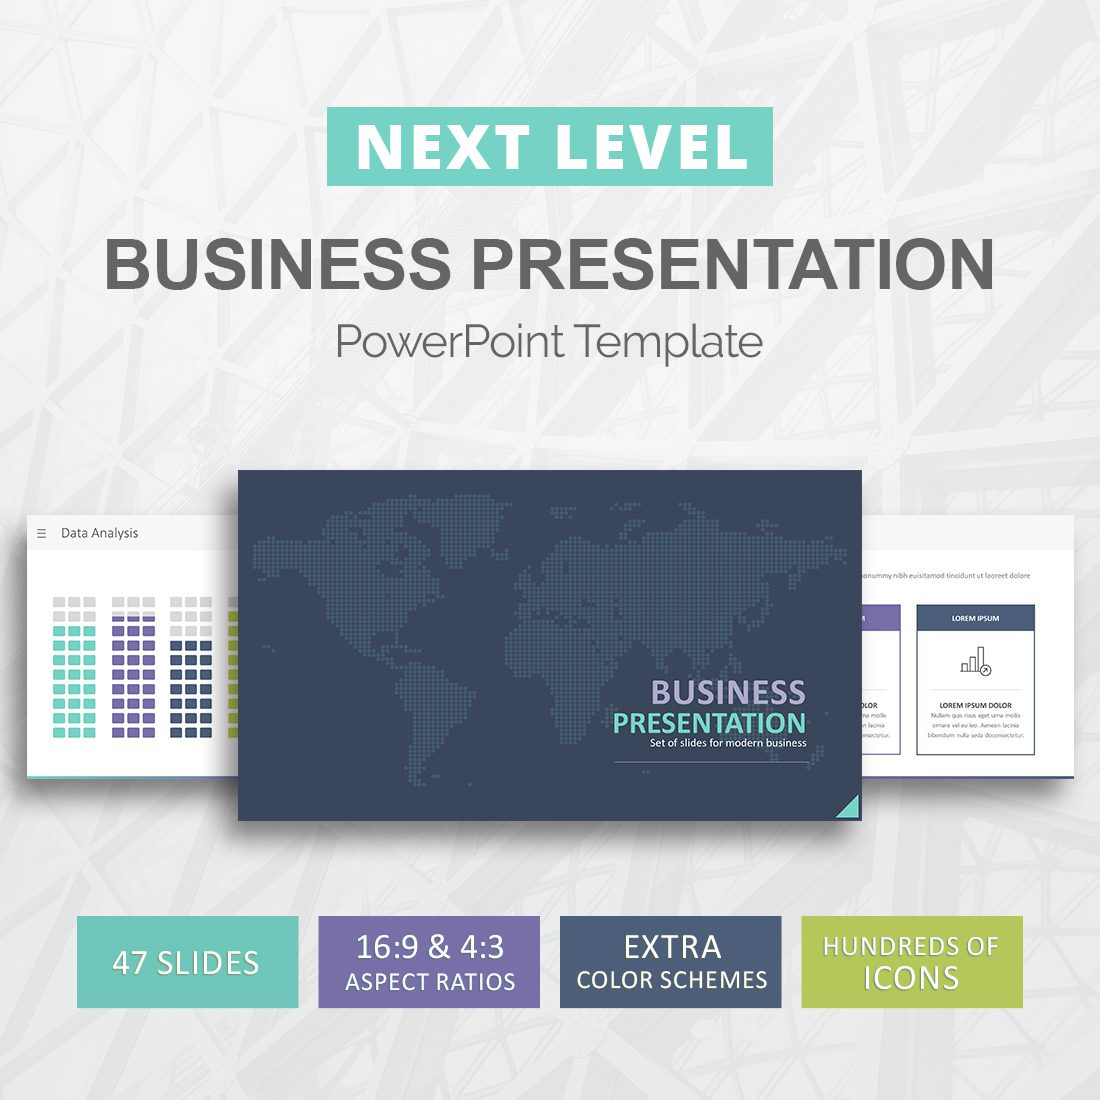 business presentation template for powerpoint - slideson, Presentation templates